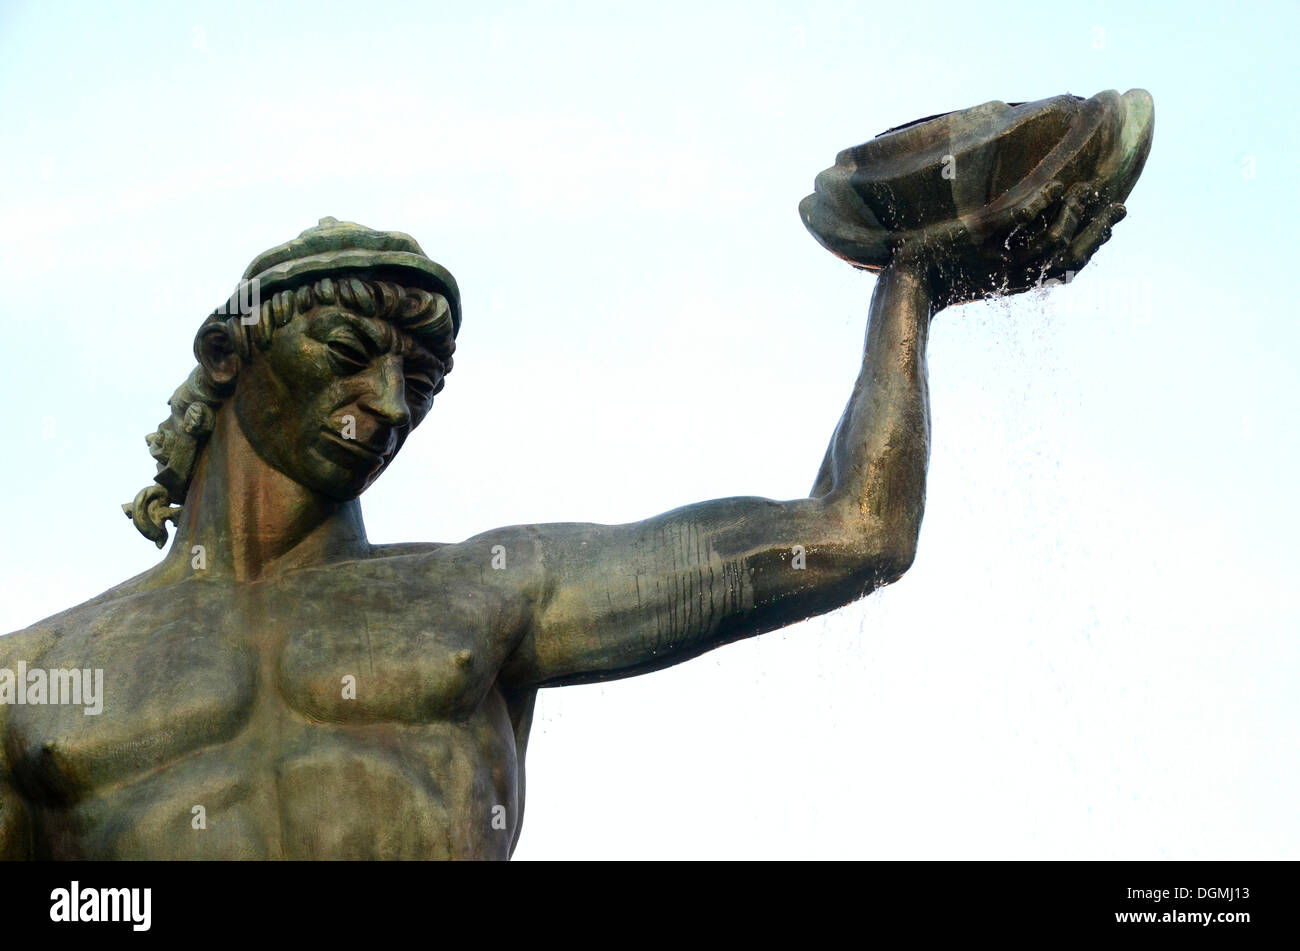 Statue of Poseidon in Gothenburg, Sweden, Europe - Stock Image